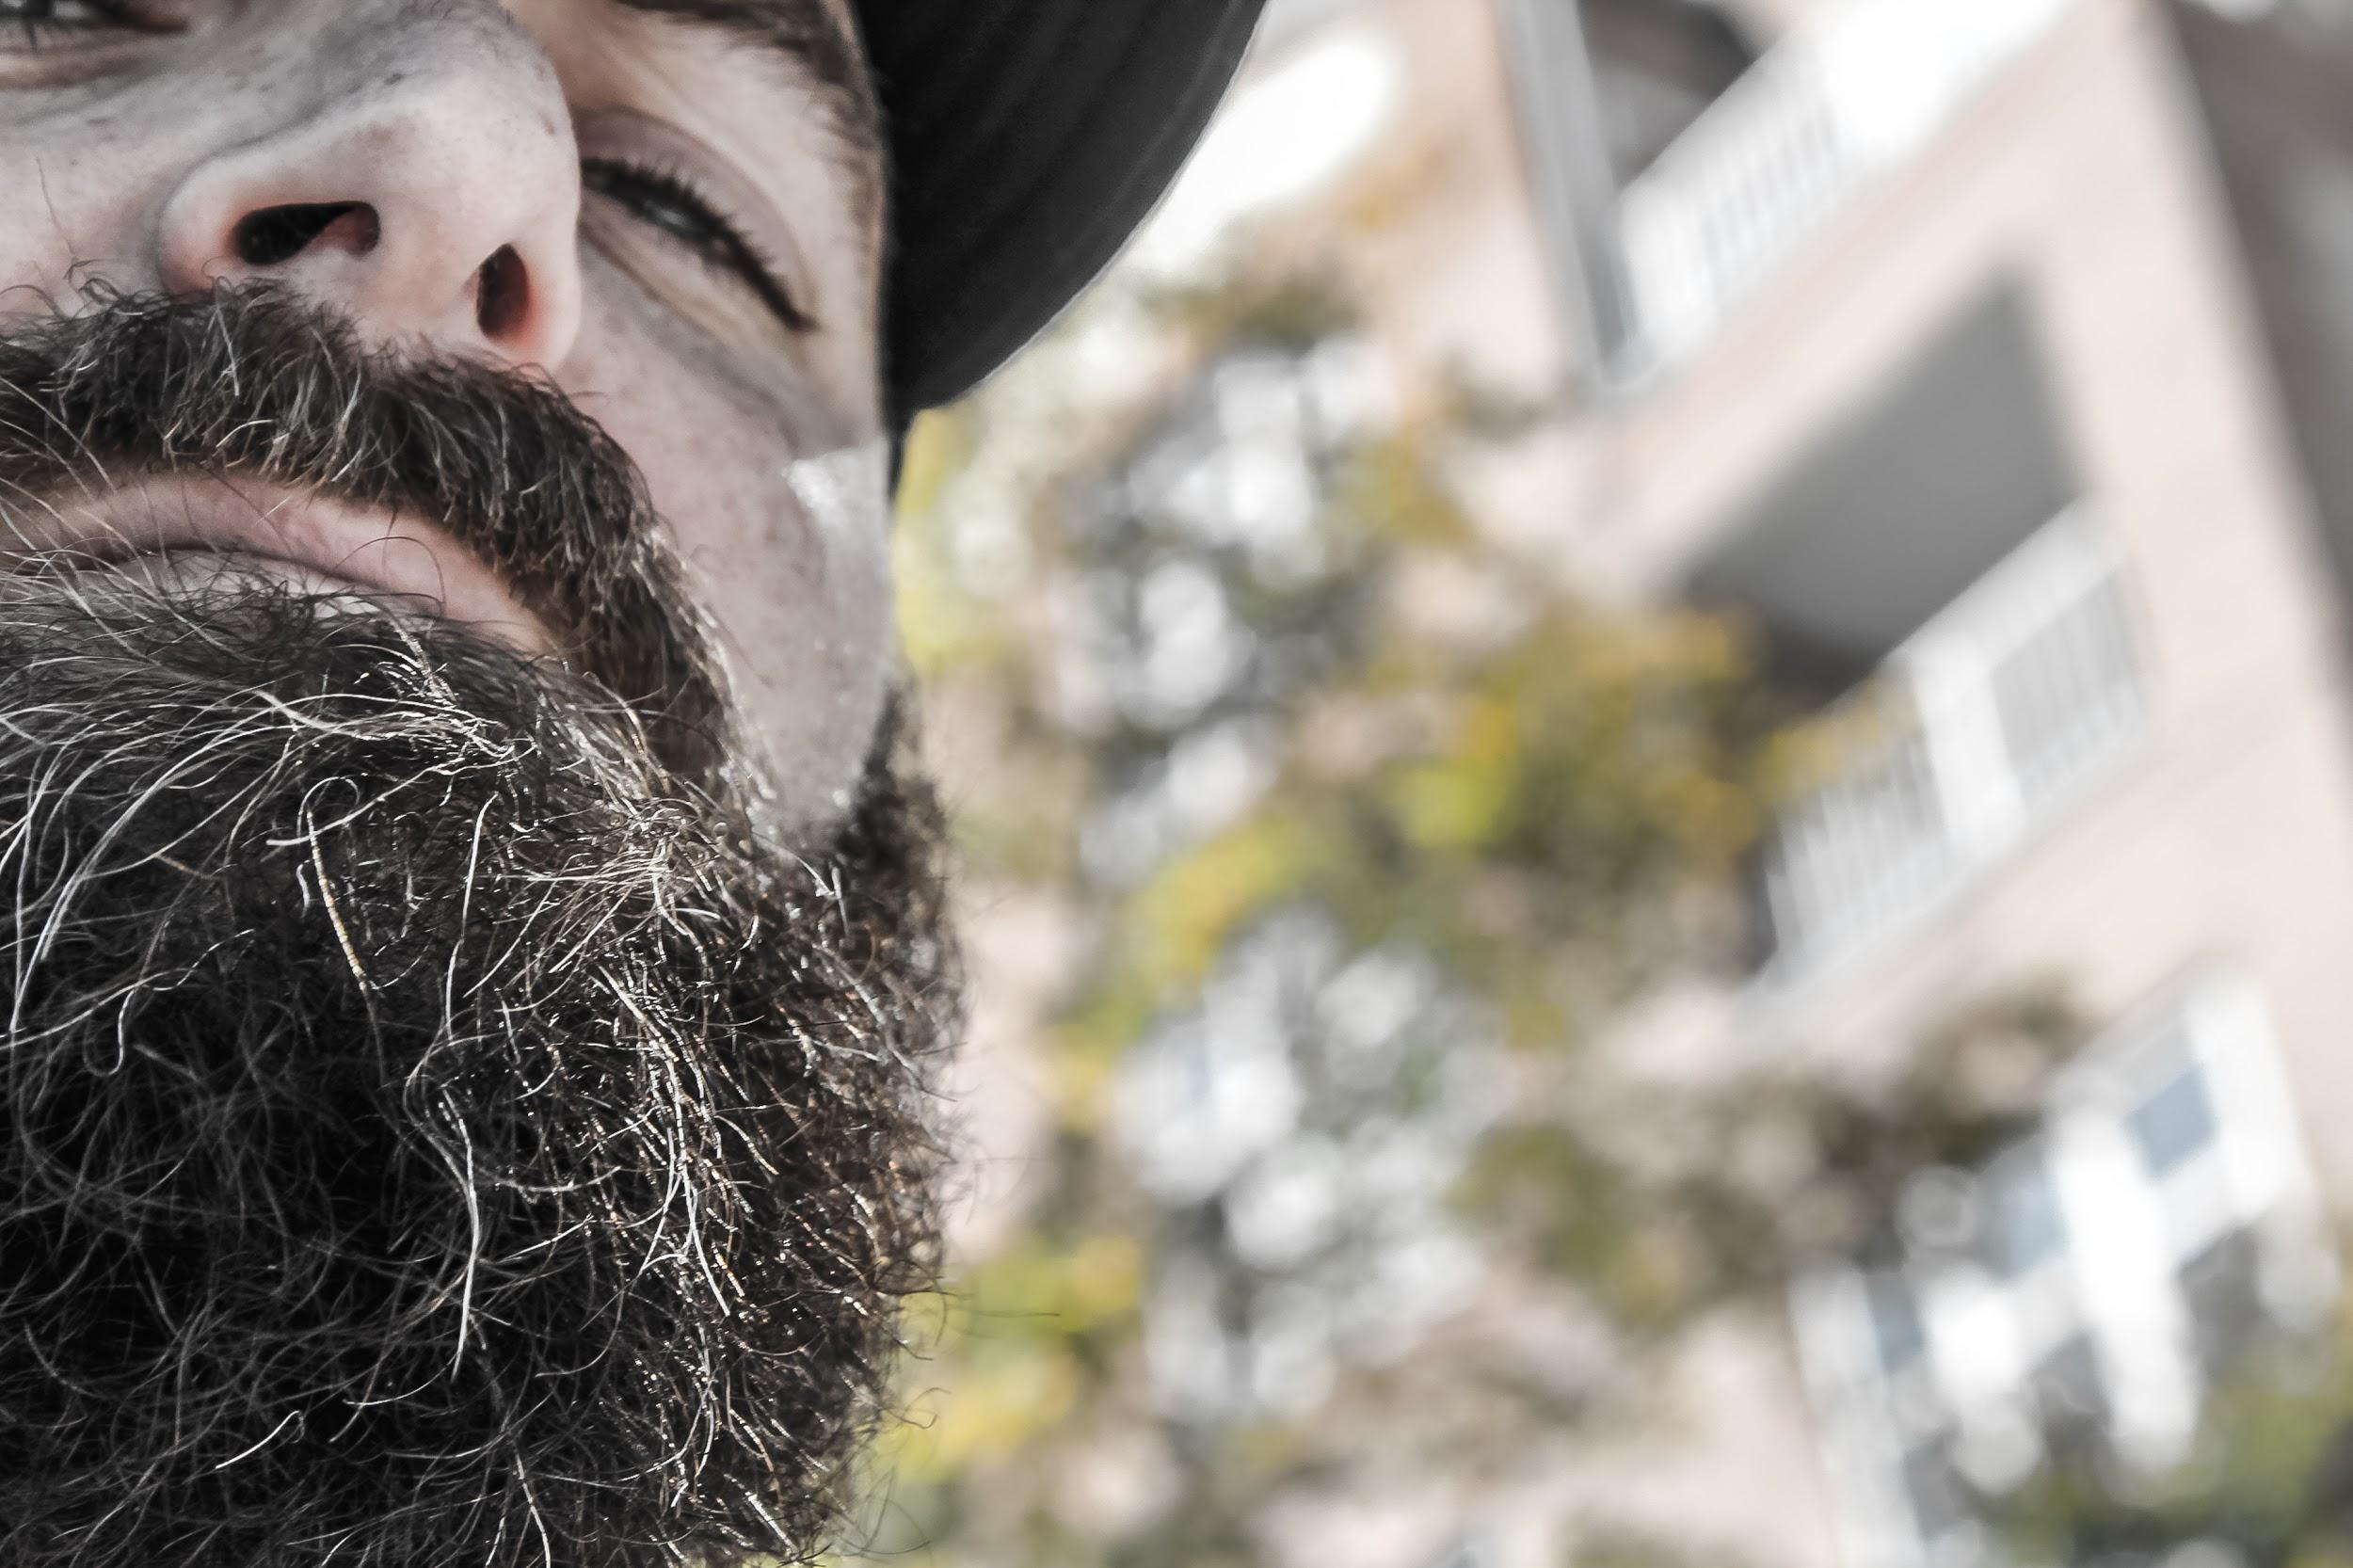 Check out my beard! (From: Pexels)